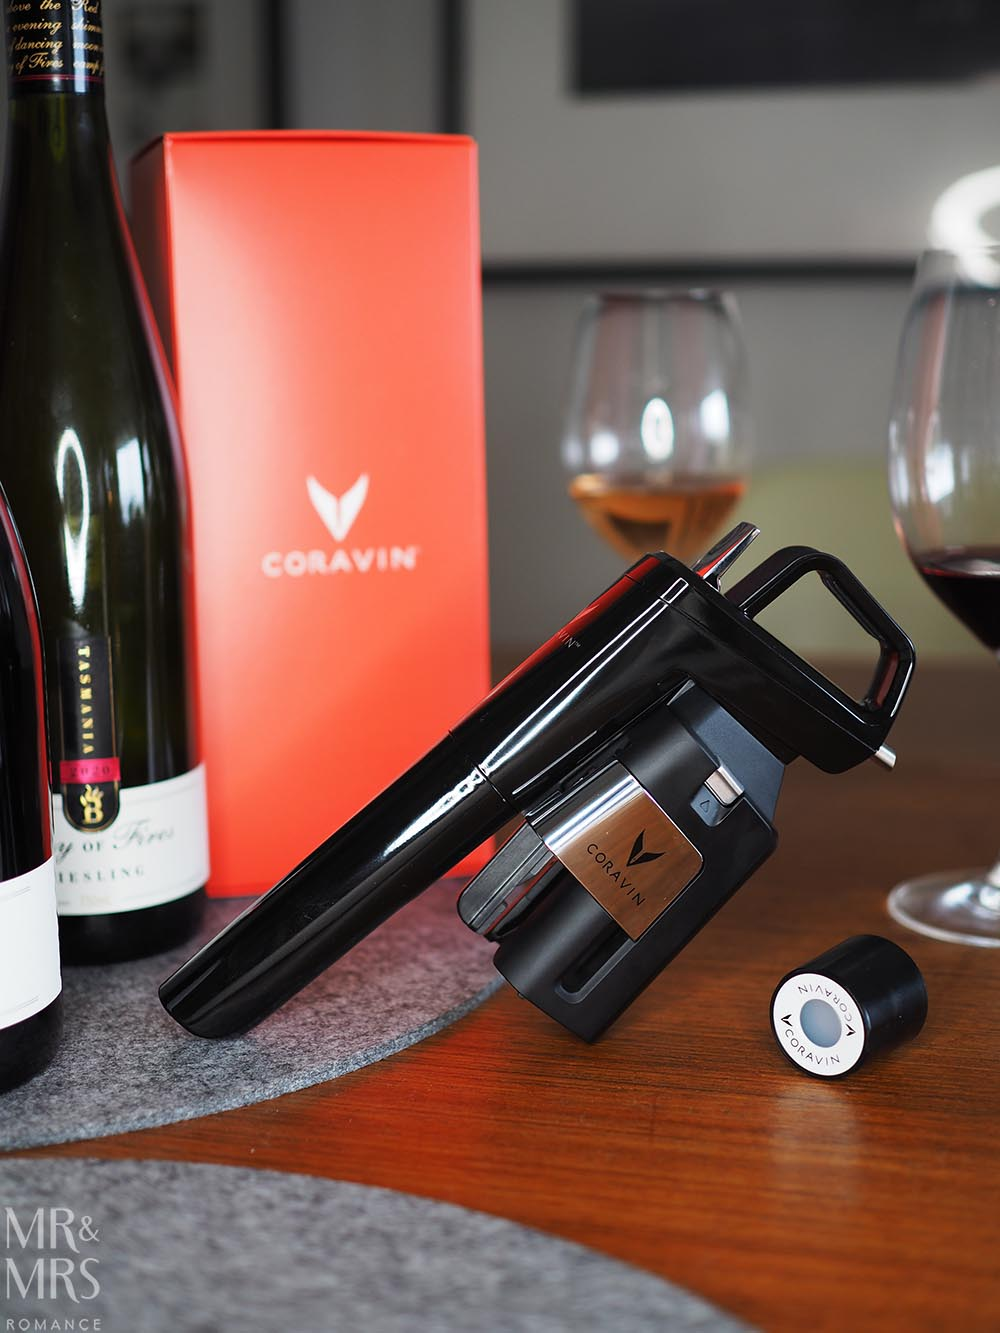 Coravin wine preservation system with screw cap